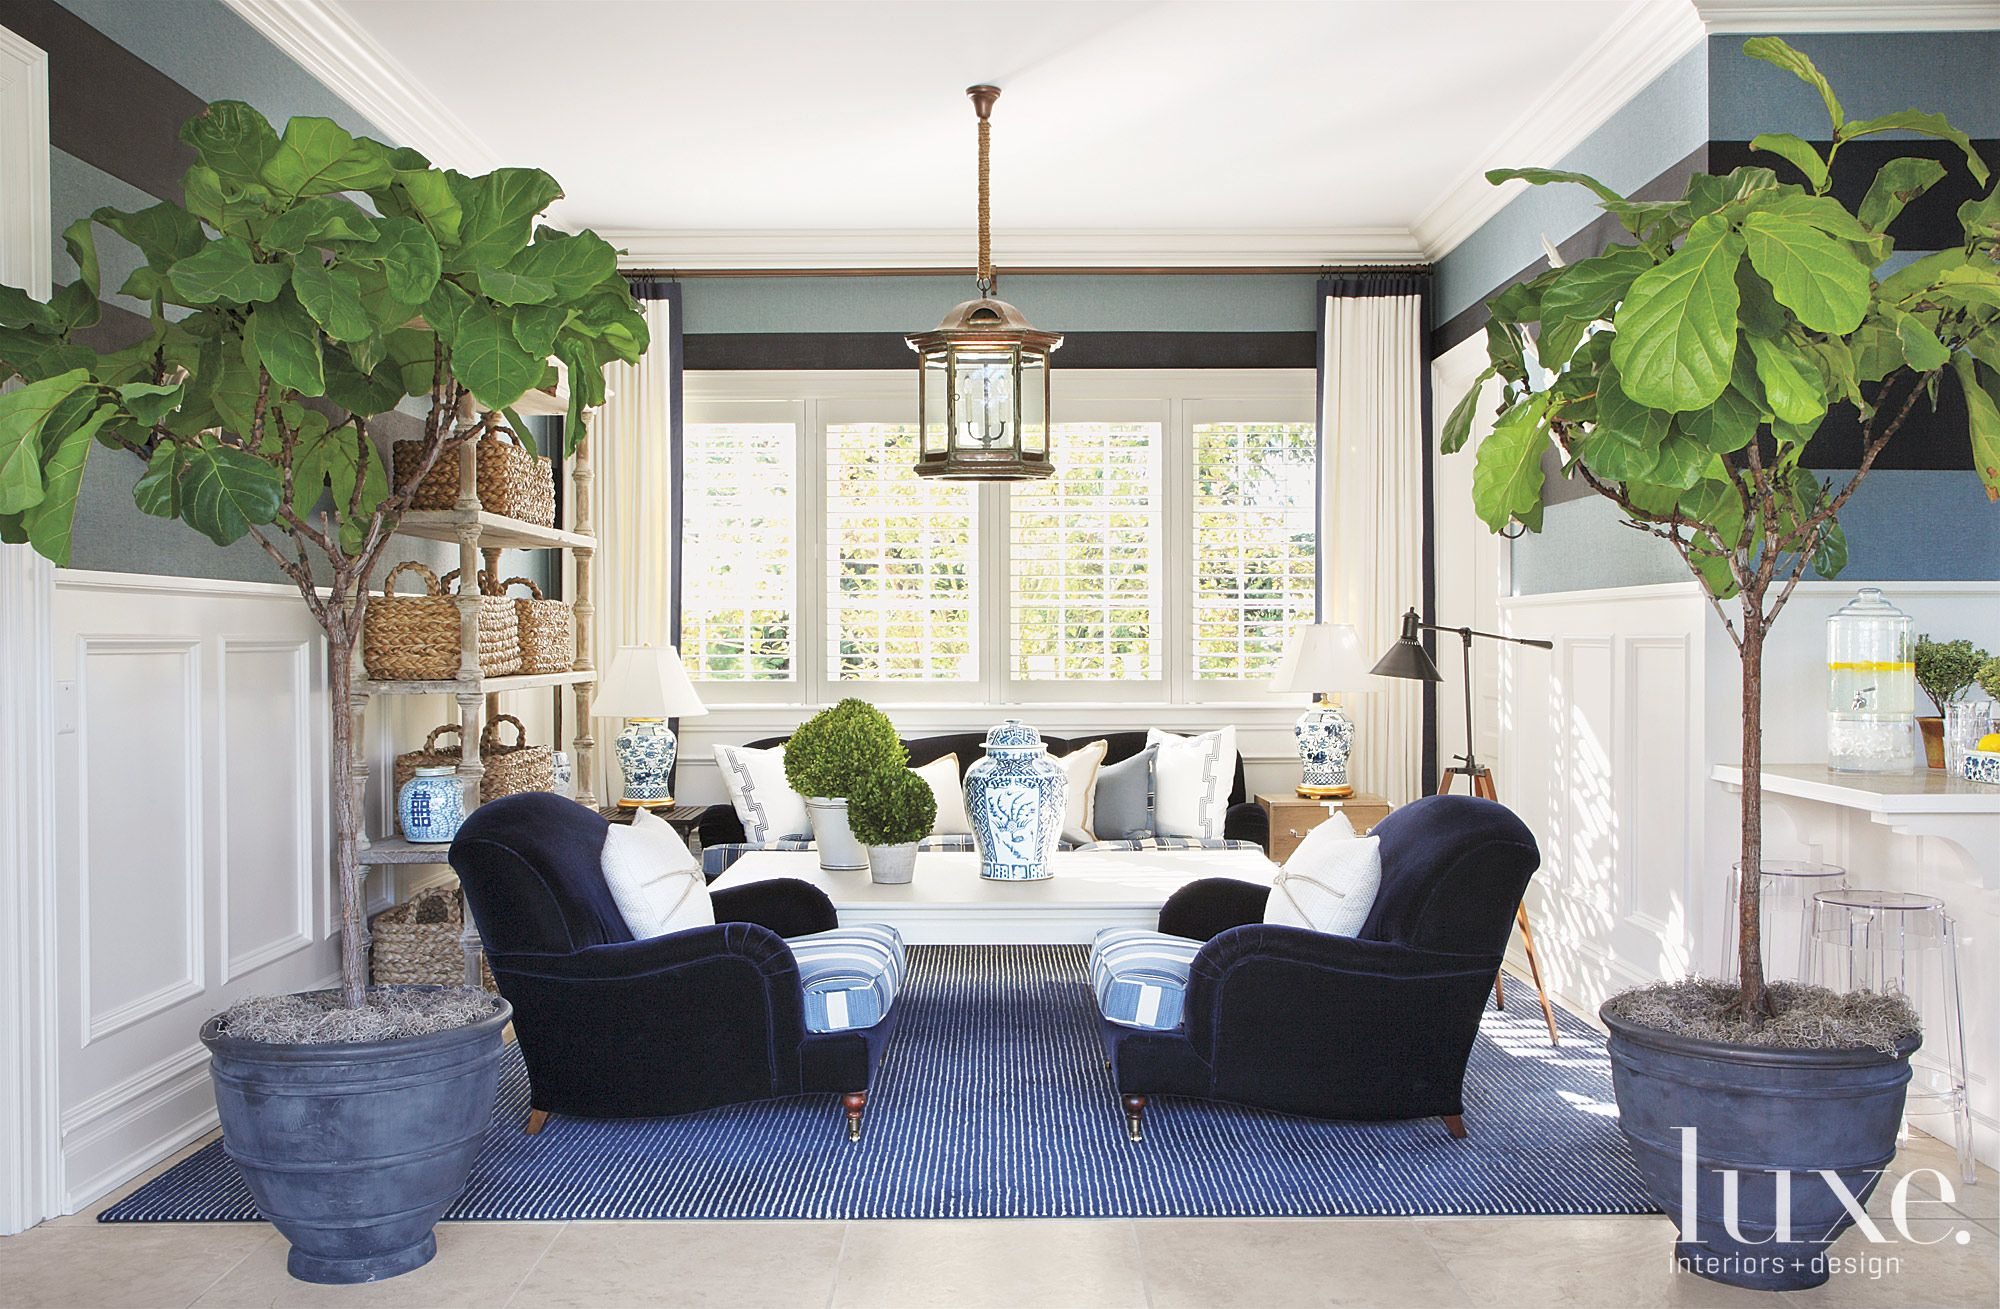 Traditional Blue Pool House with Nautical Vibe